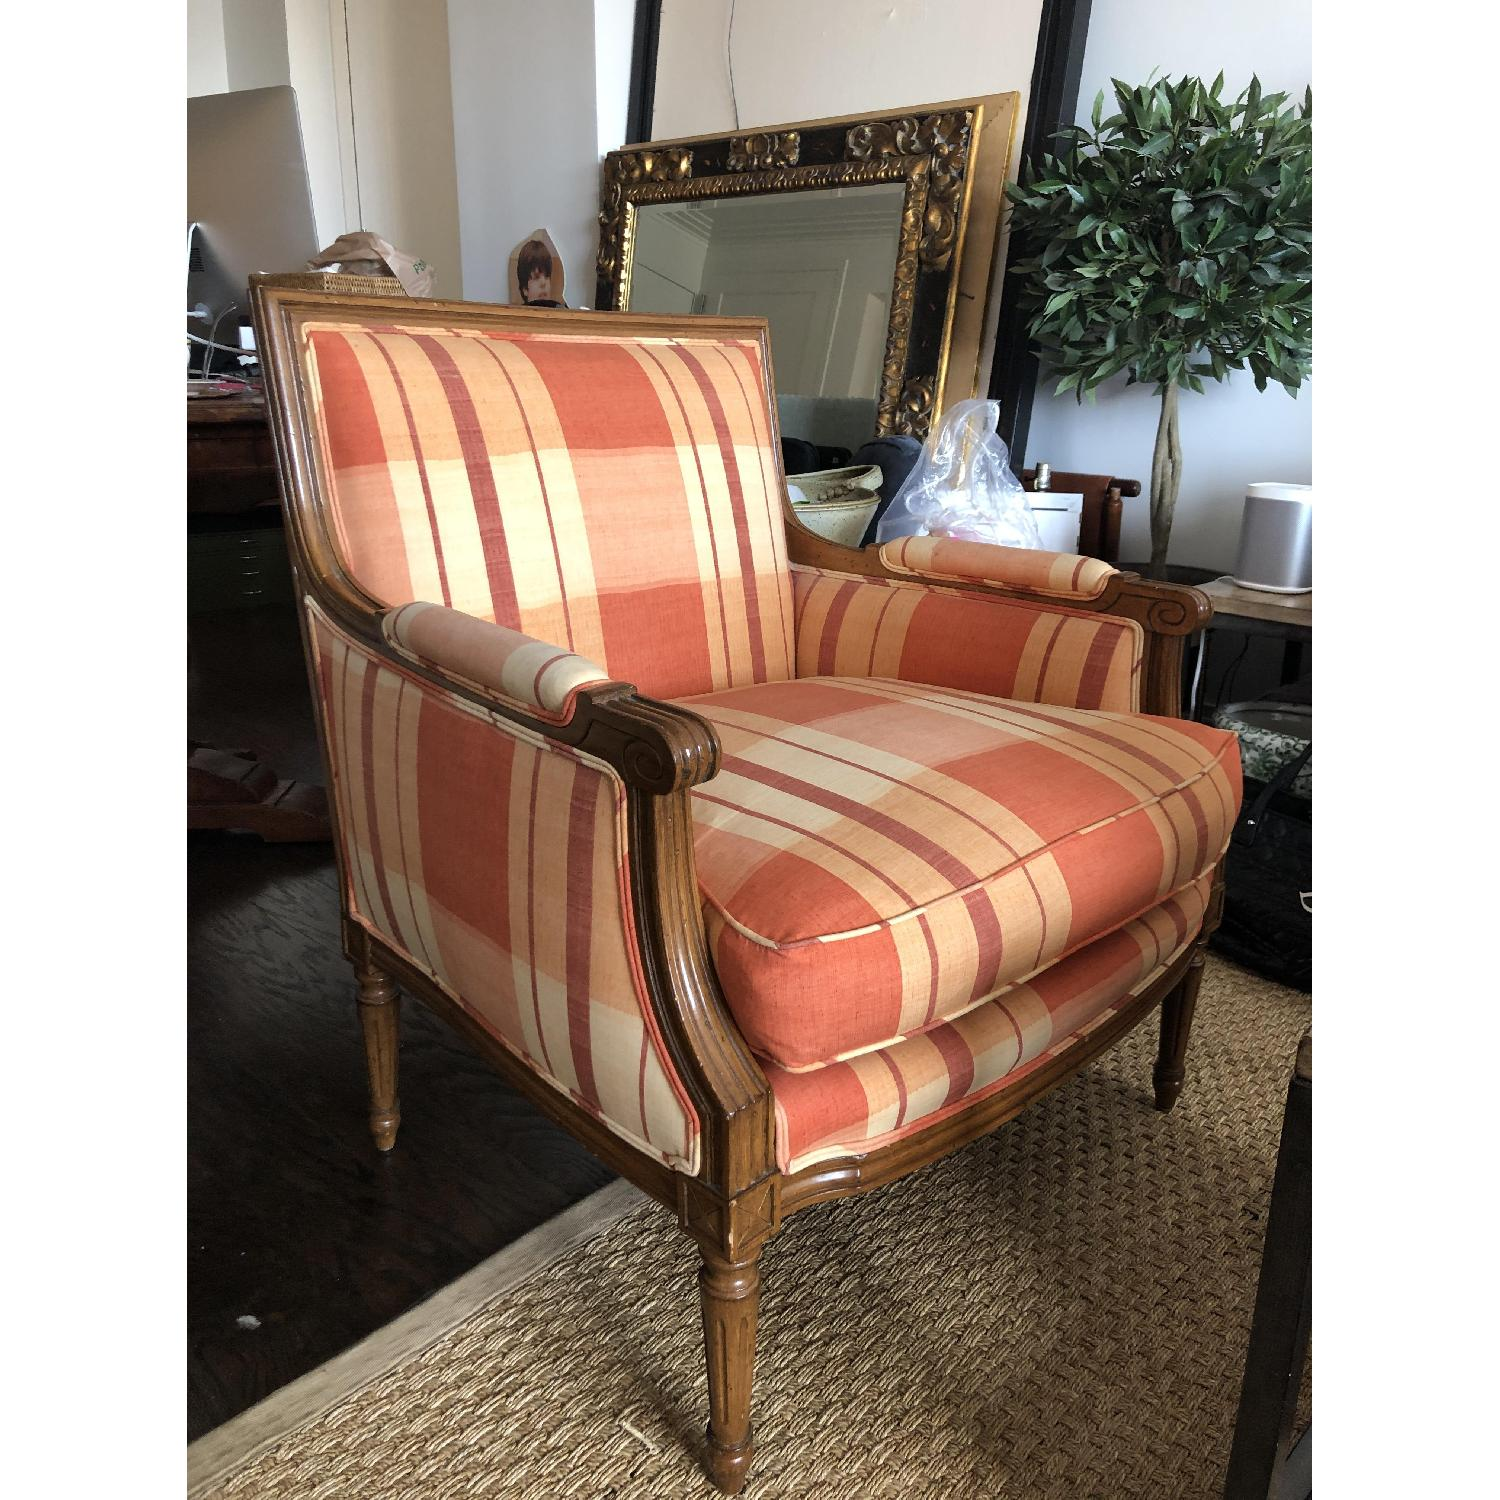 Sunset Bergere Chairs - image-1